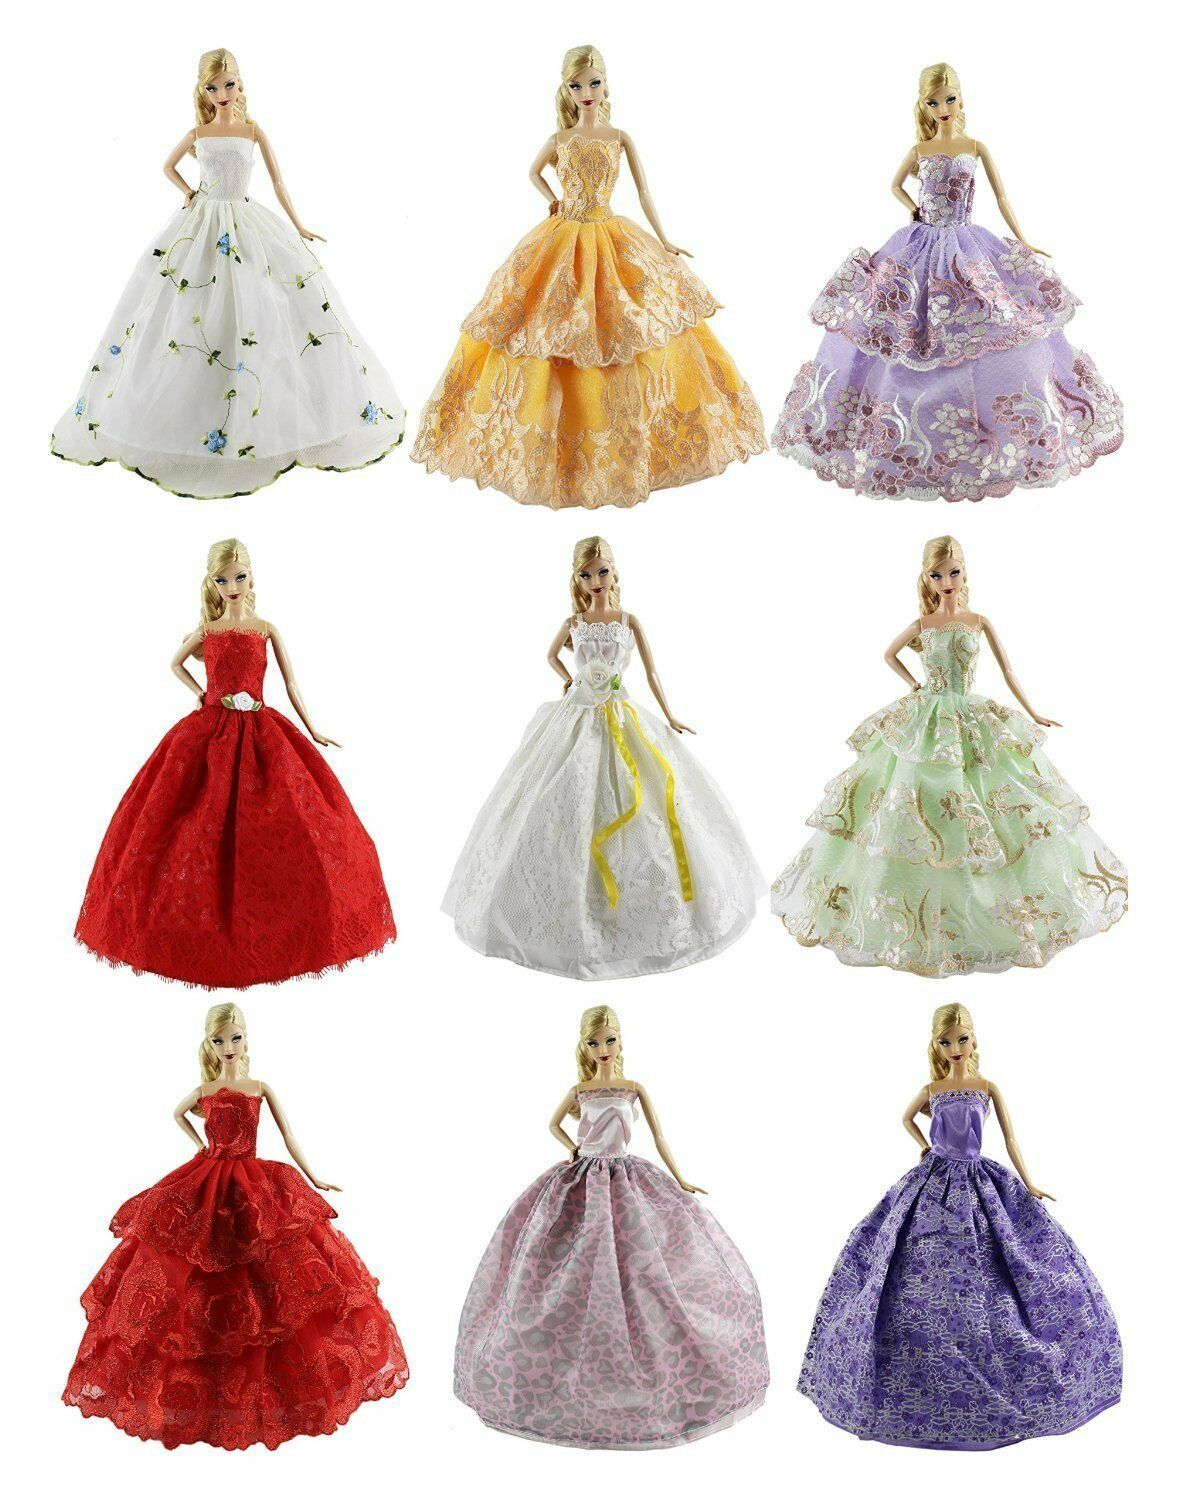 6Pcs Handmade Party Wedding Dresses Fashion Clothes Gown Set For Barbie Dolls US